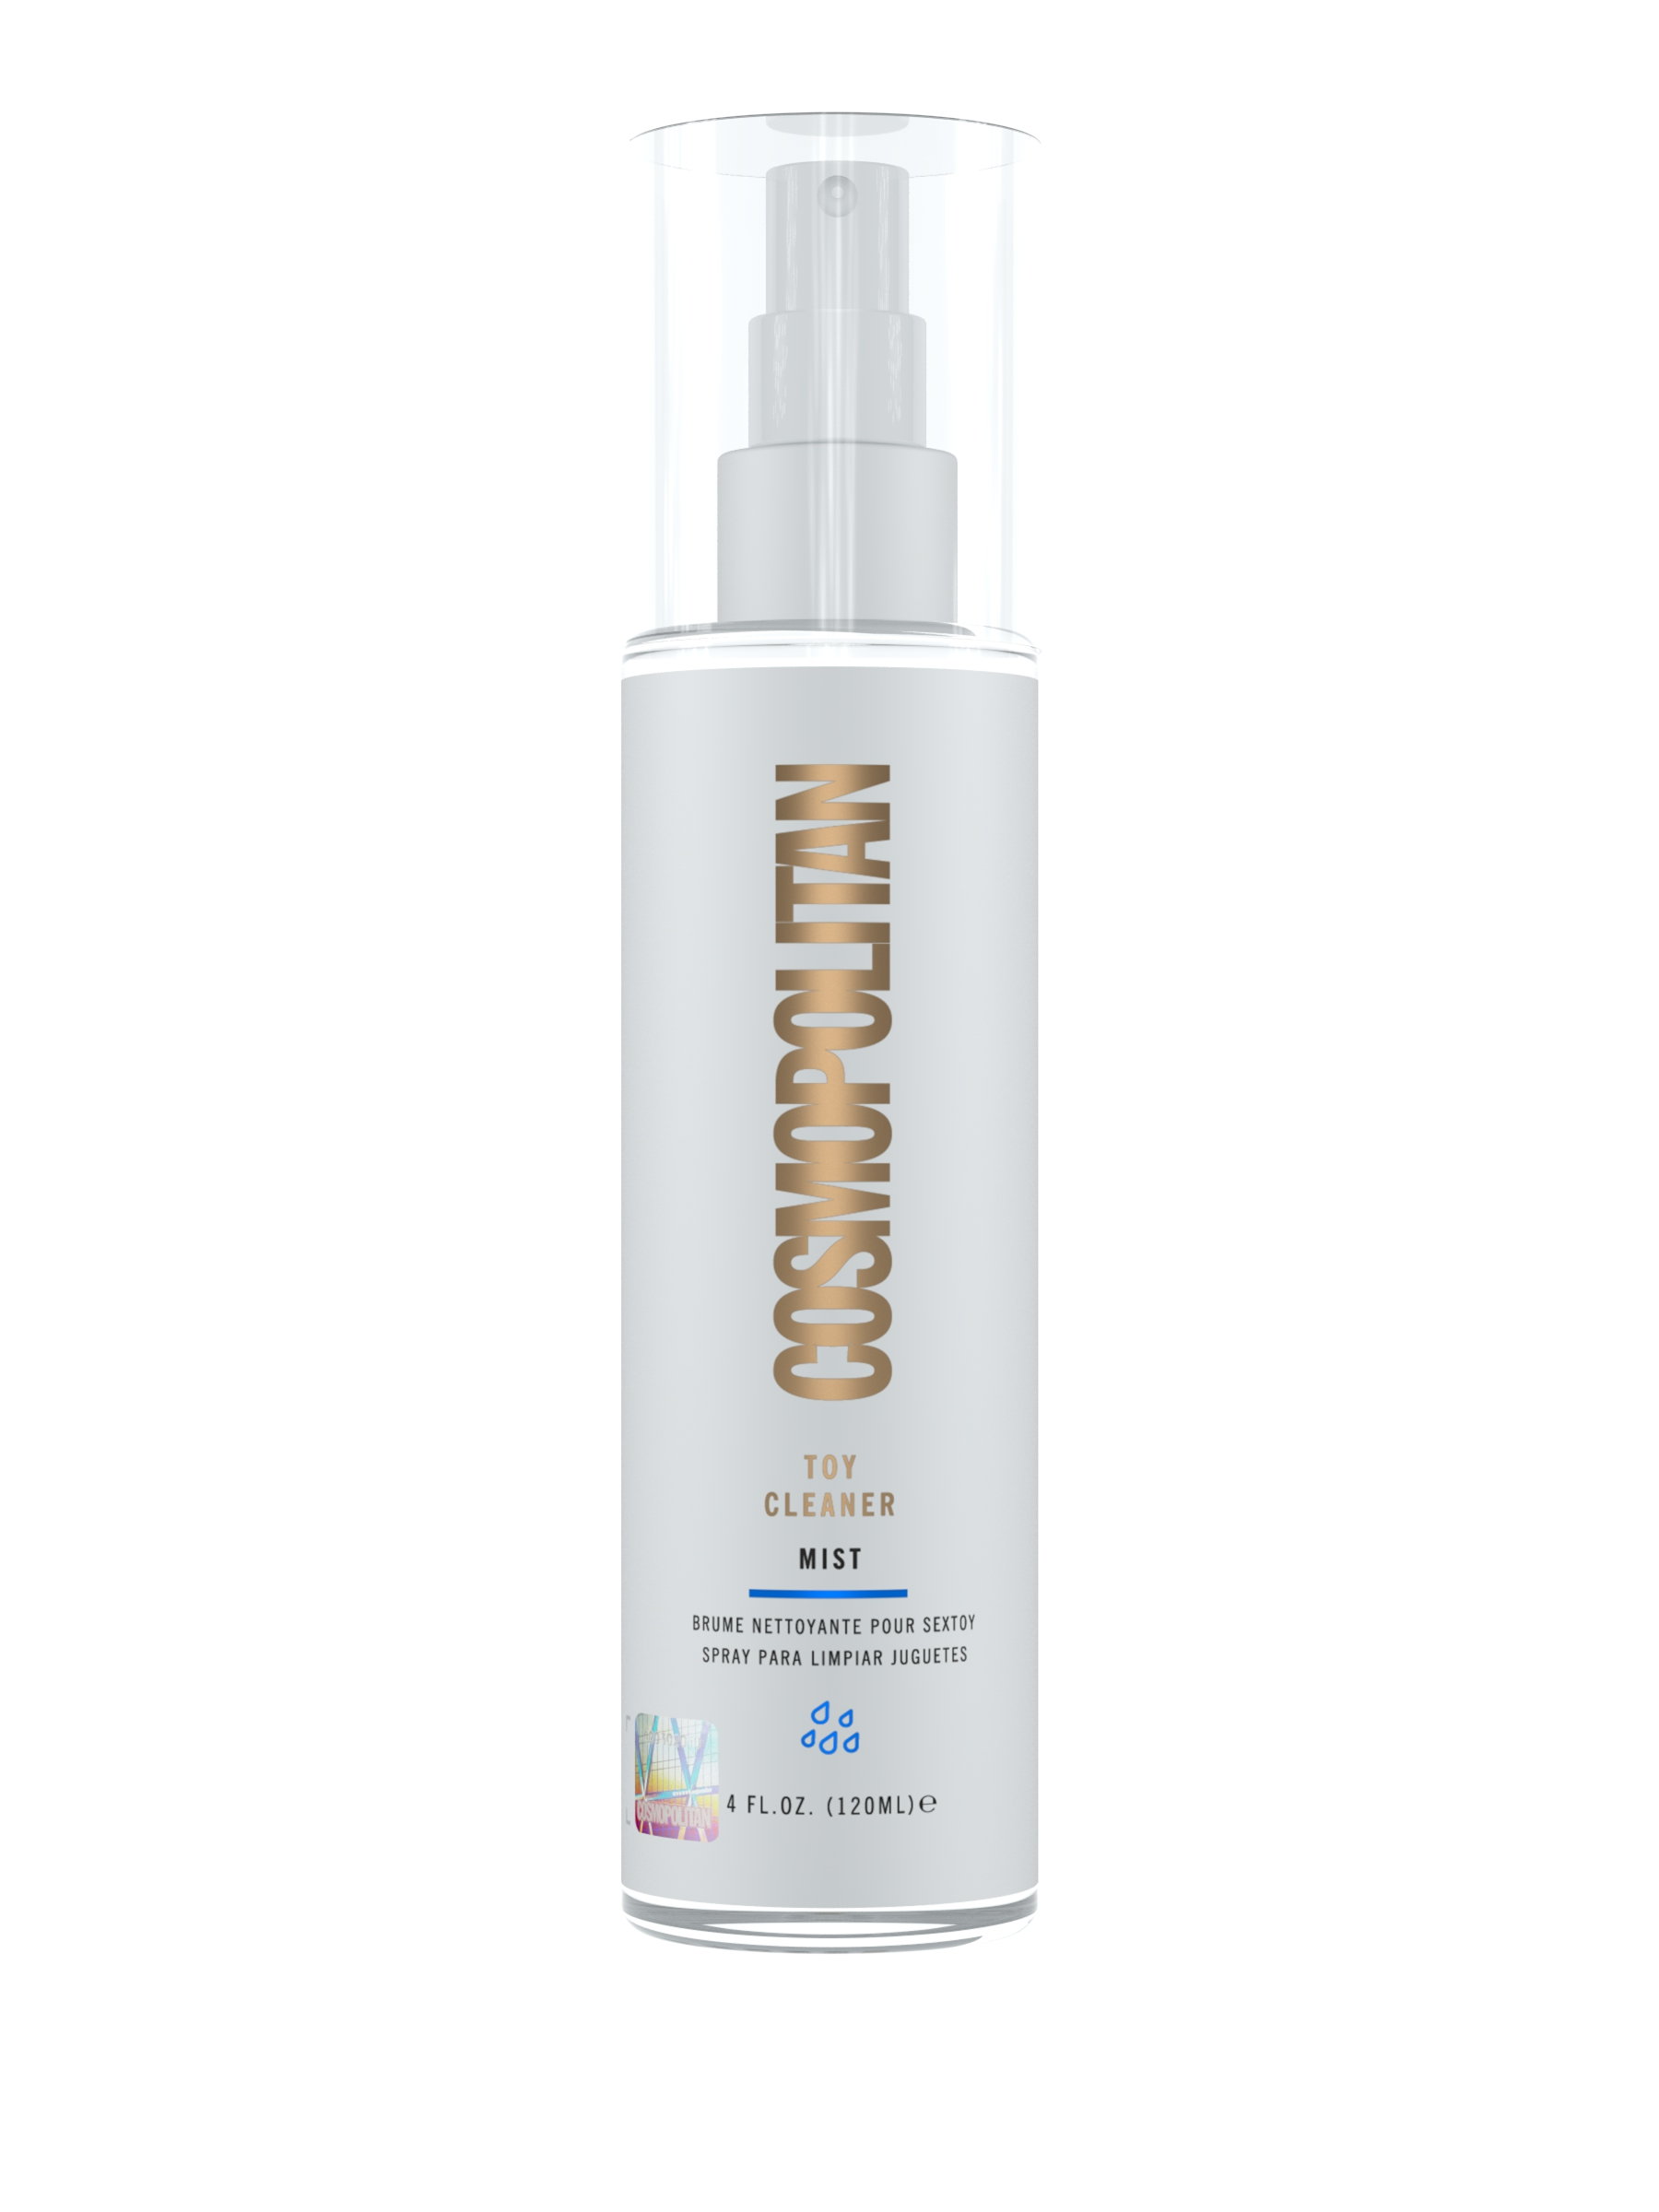 COSMO Toy Cleaner Mist -